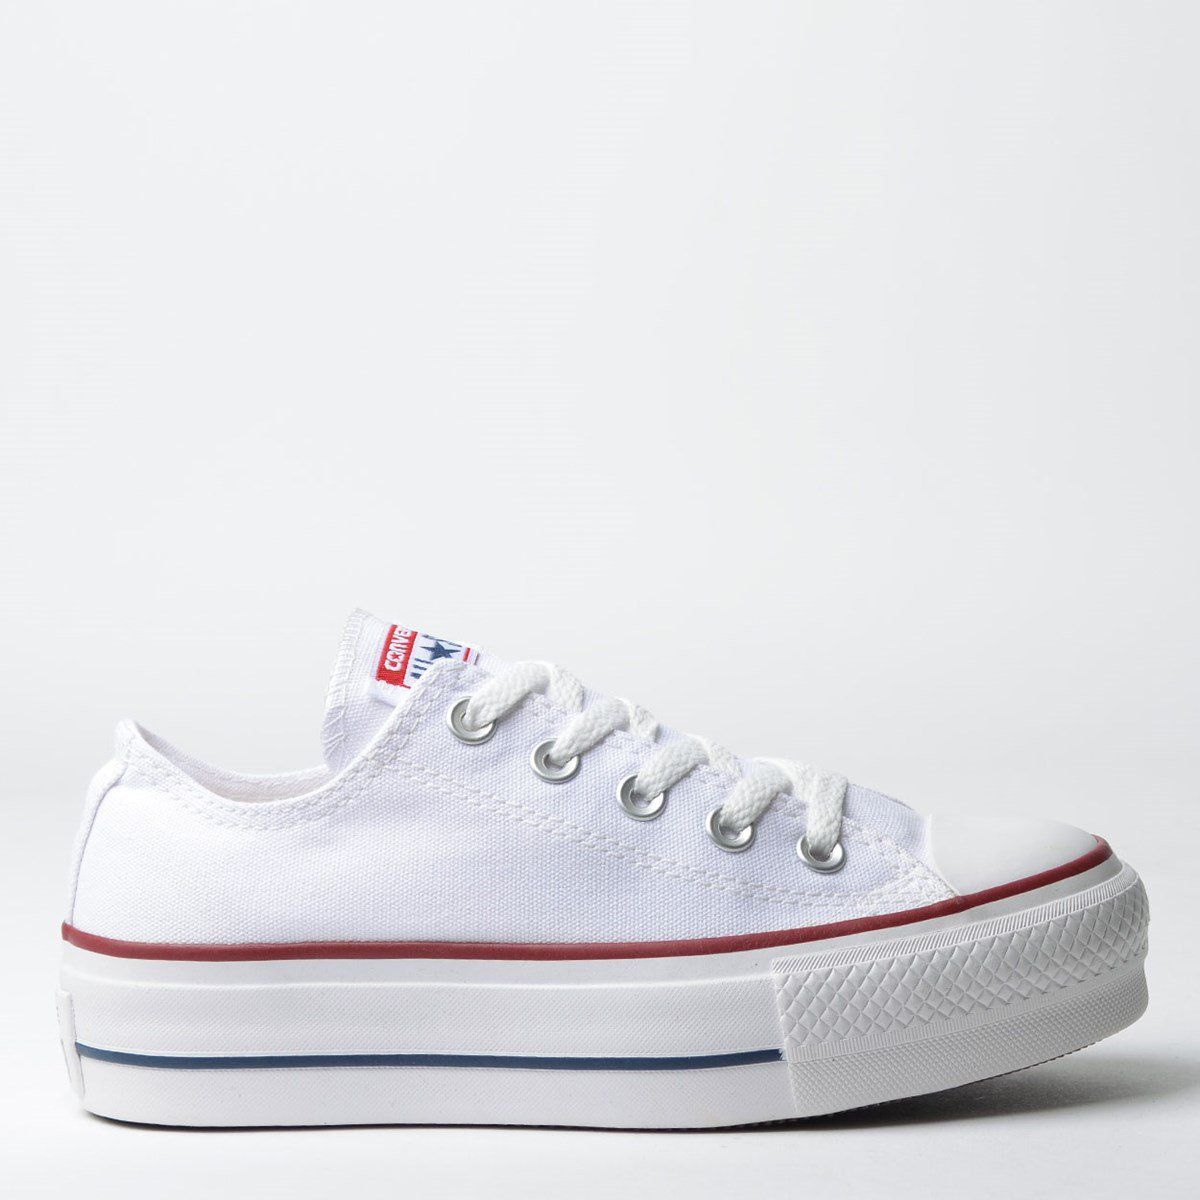 63ff6145e9 Tênis Converse Chuck Taylor All Star Platform Branco Marinho - Overcome  Clothing